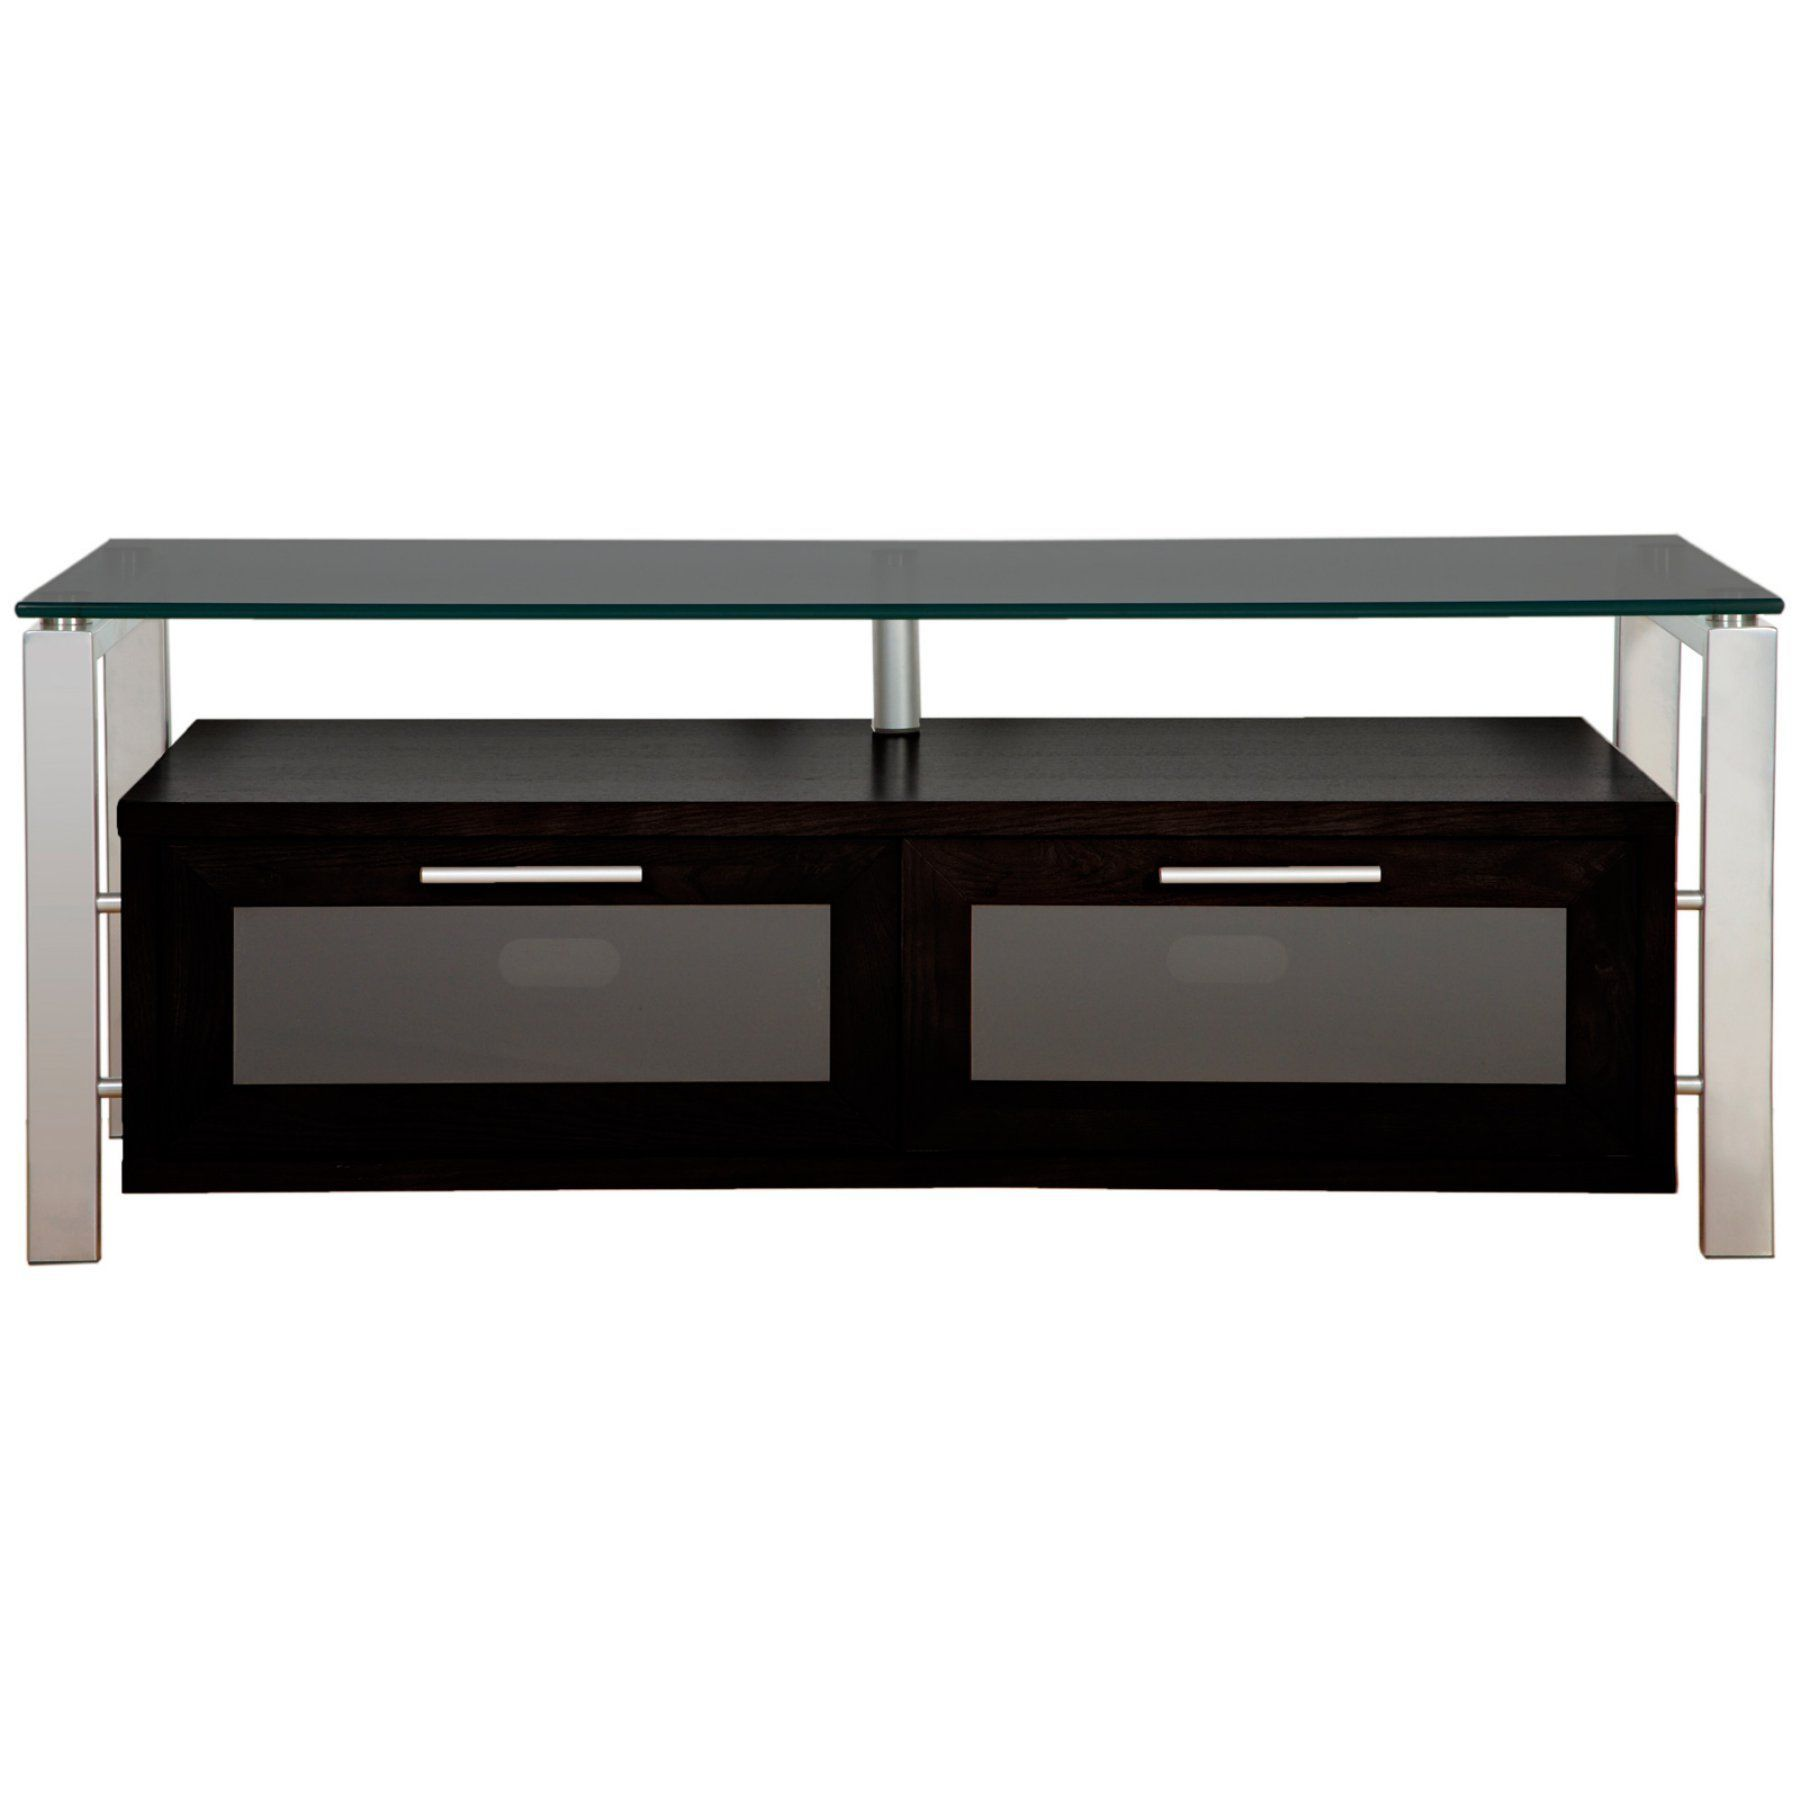 Plateau Decor 50 Inch TV Stand in Black Glass and Silver DECOR 50 B S BG